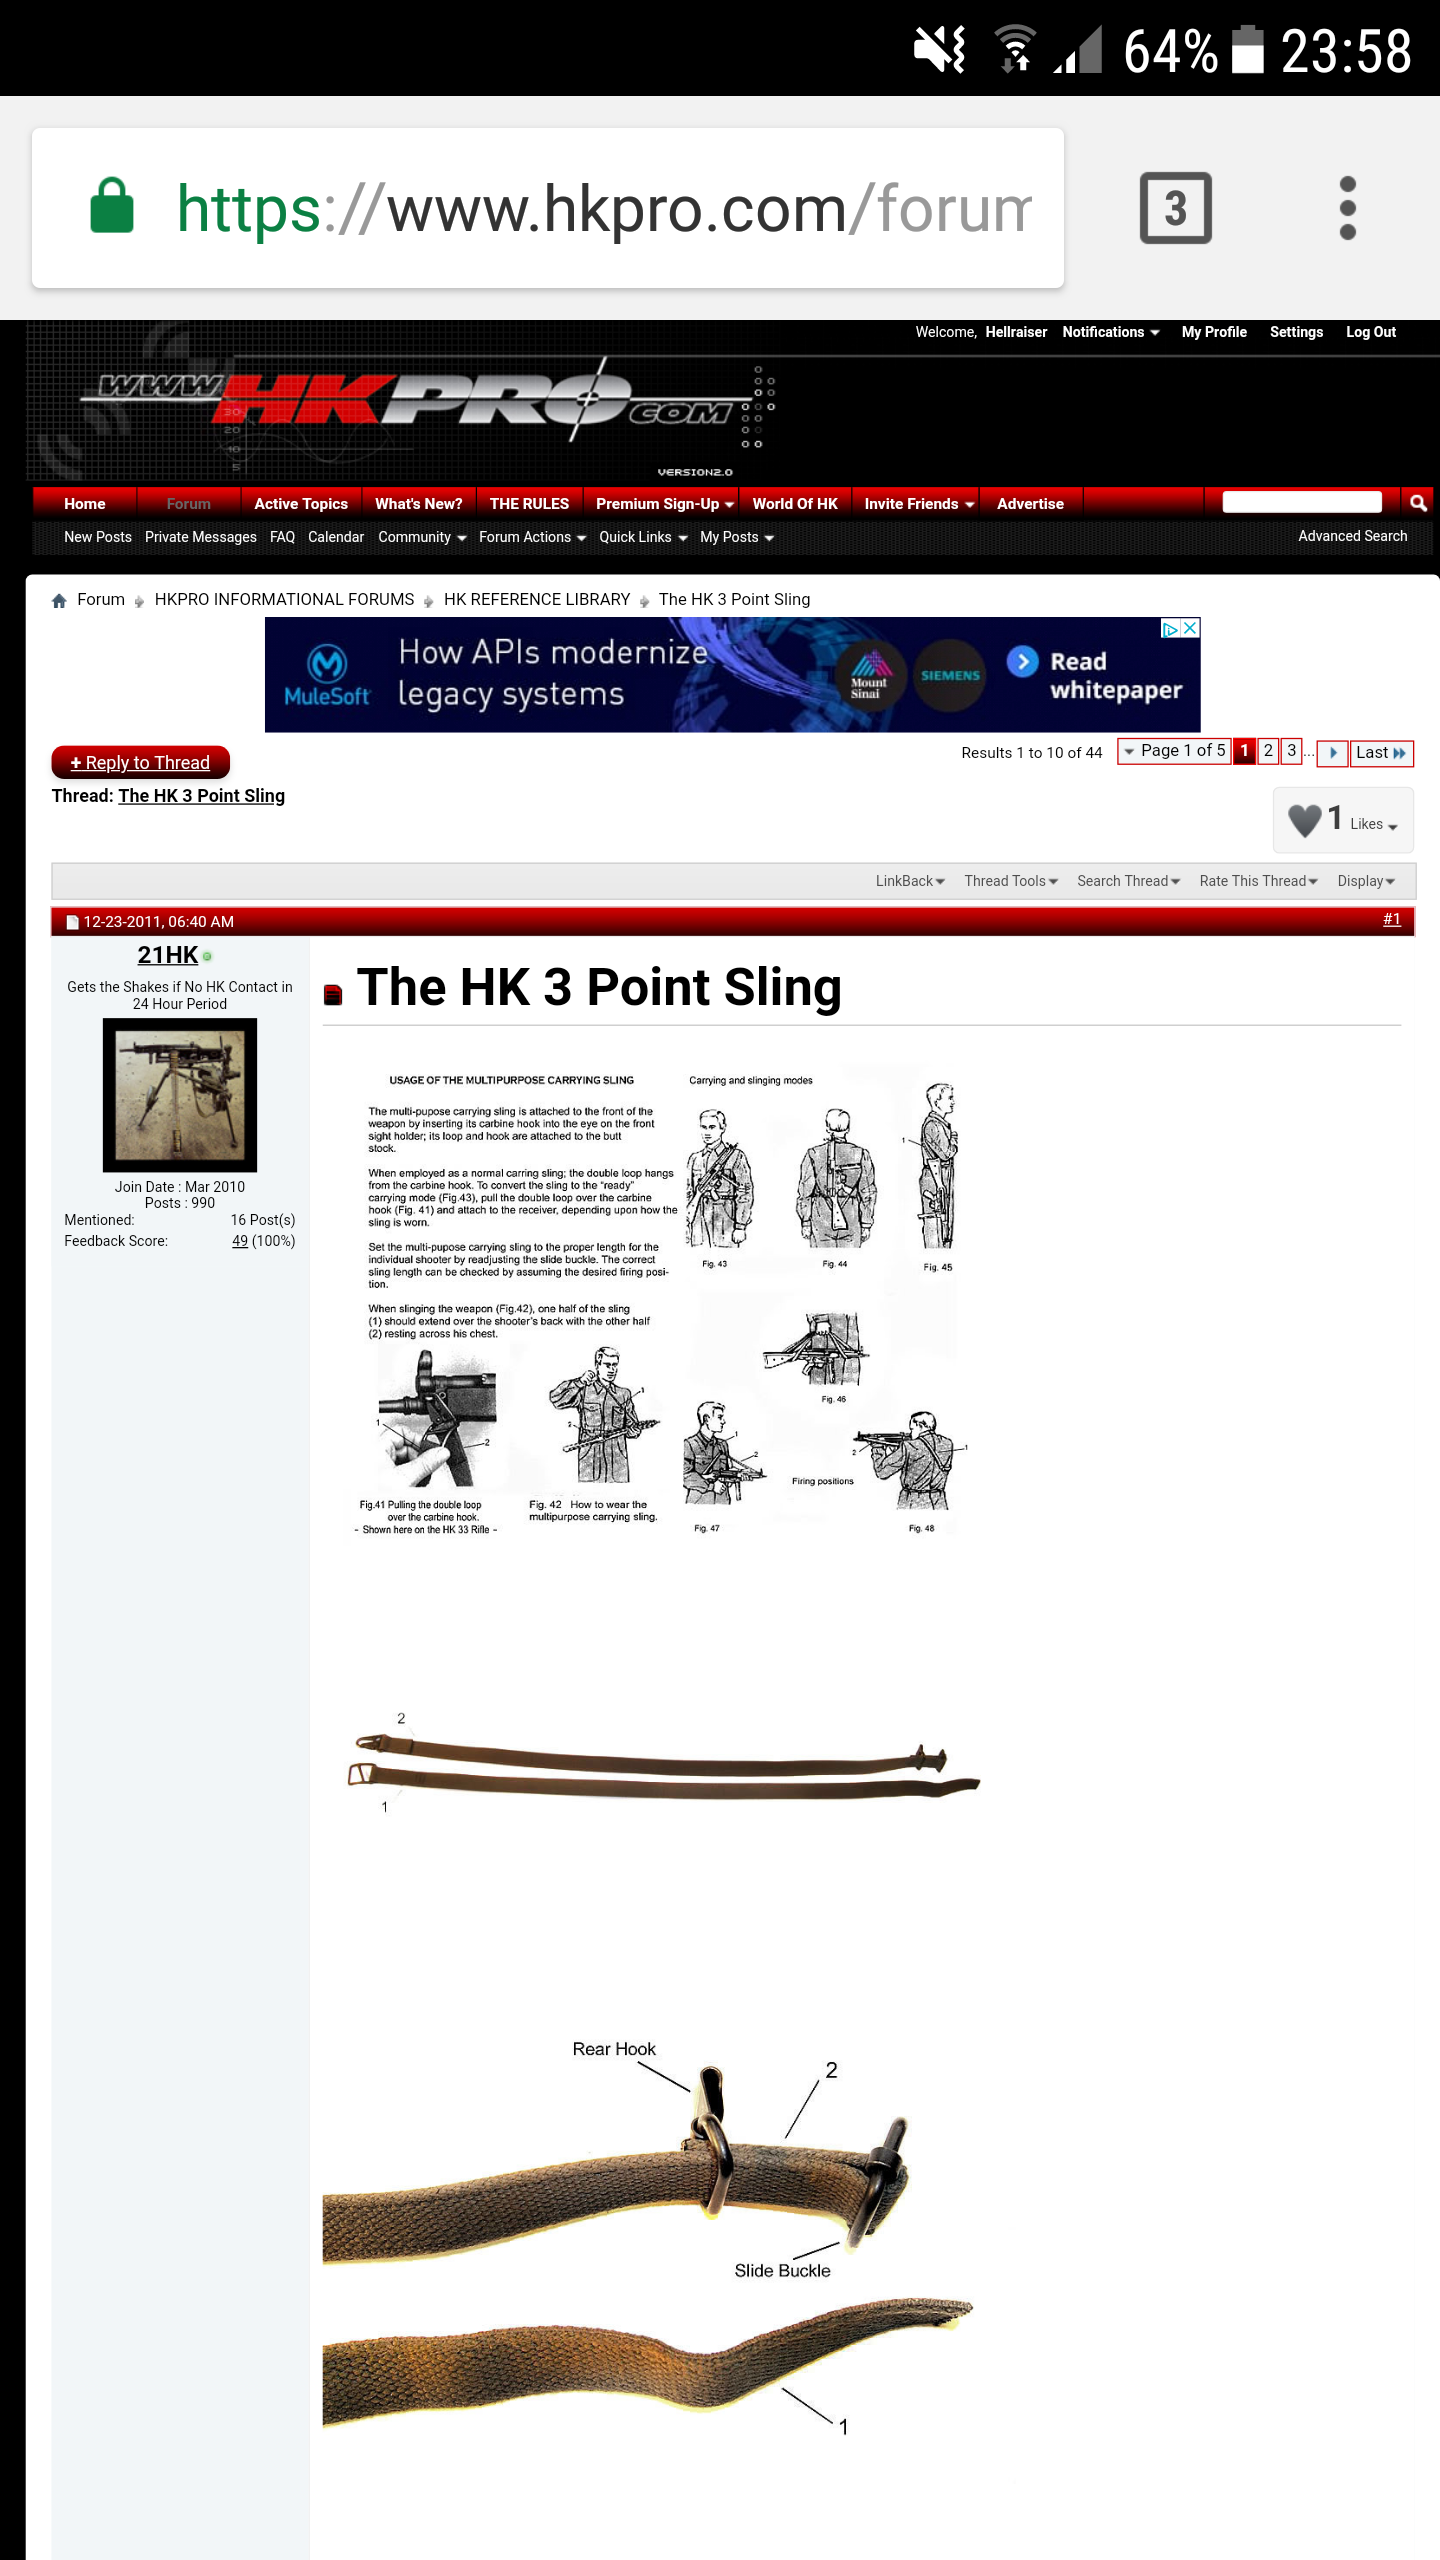 The HK 3 Point Sling-screenshot_20180804-235845.png